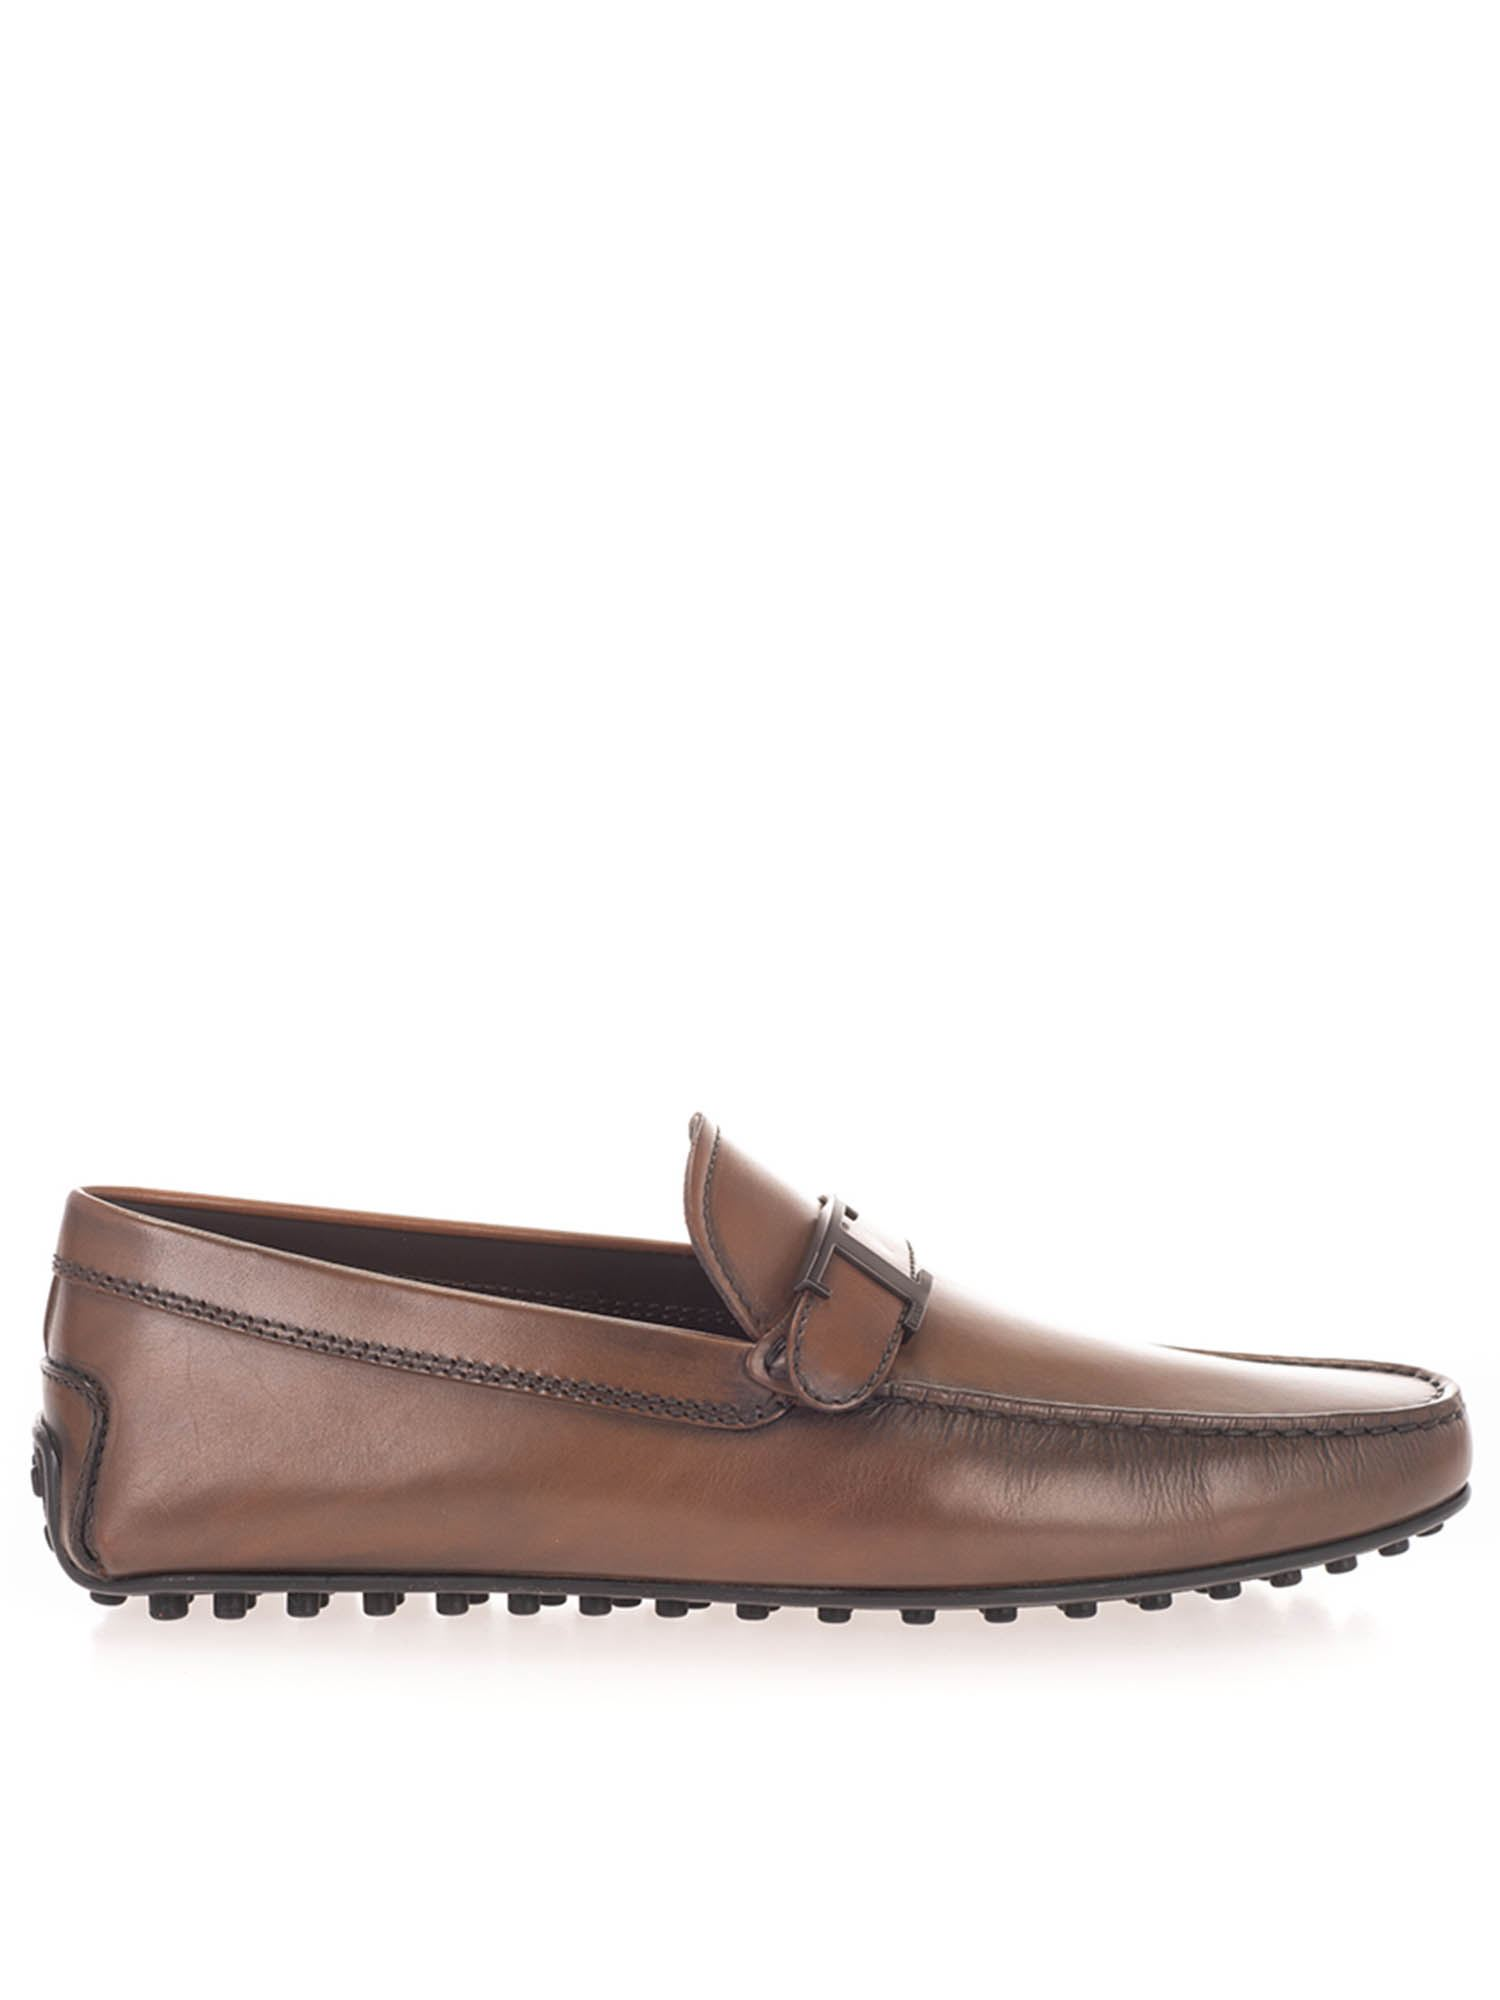 Tod's Leathers LEATHER LOAFERS IN BROWN